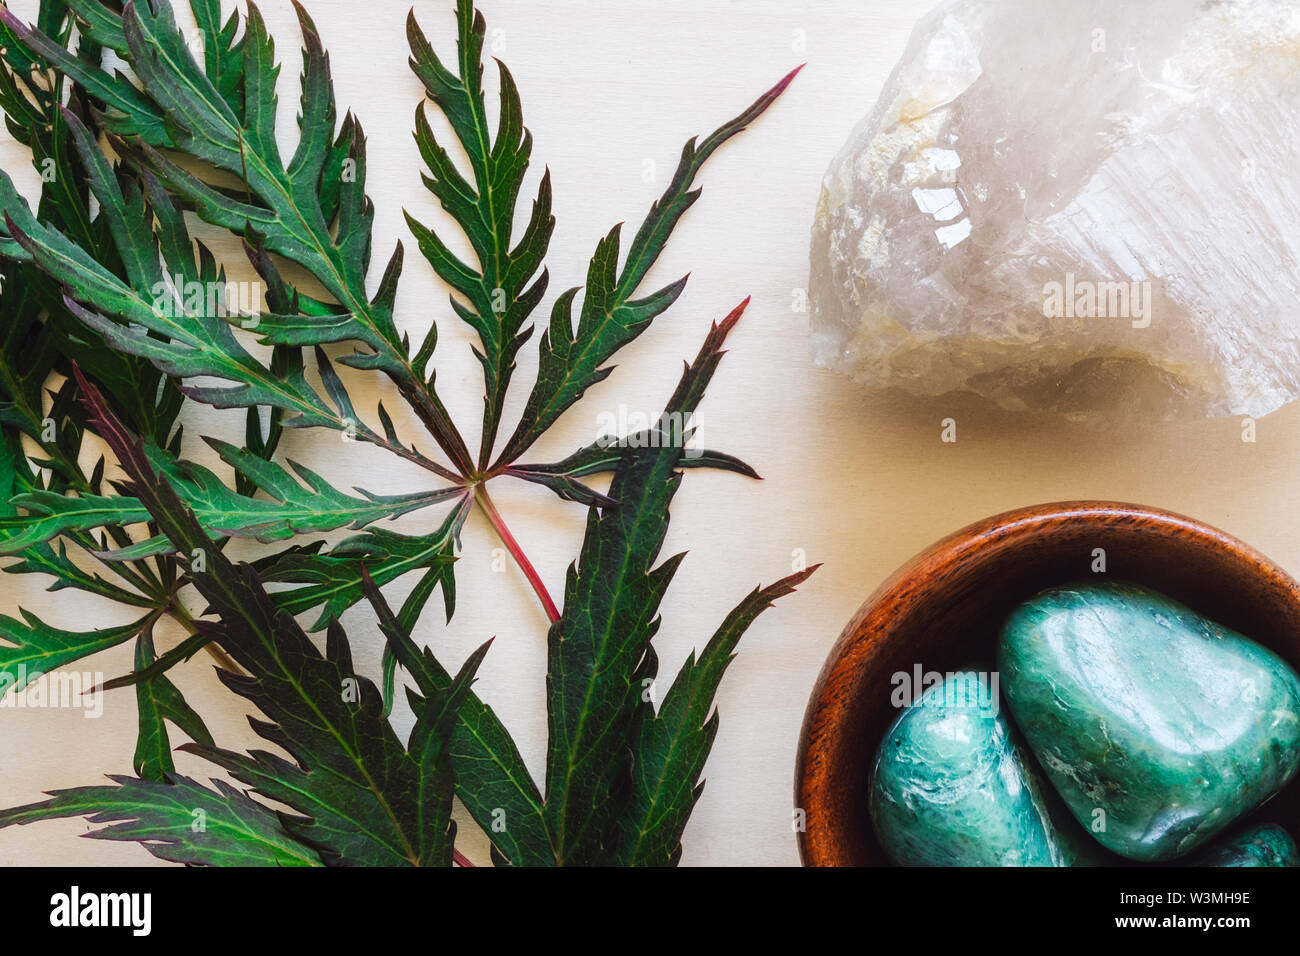 Chrysoprase with Quartz and Japanese Maple Leaves on Wood - Stock Image